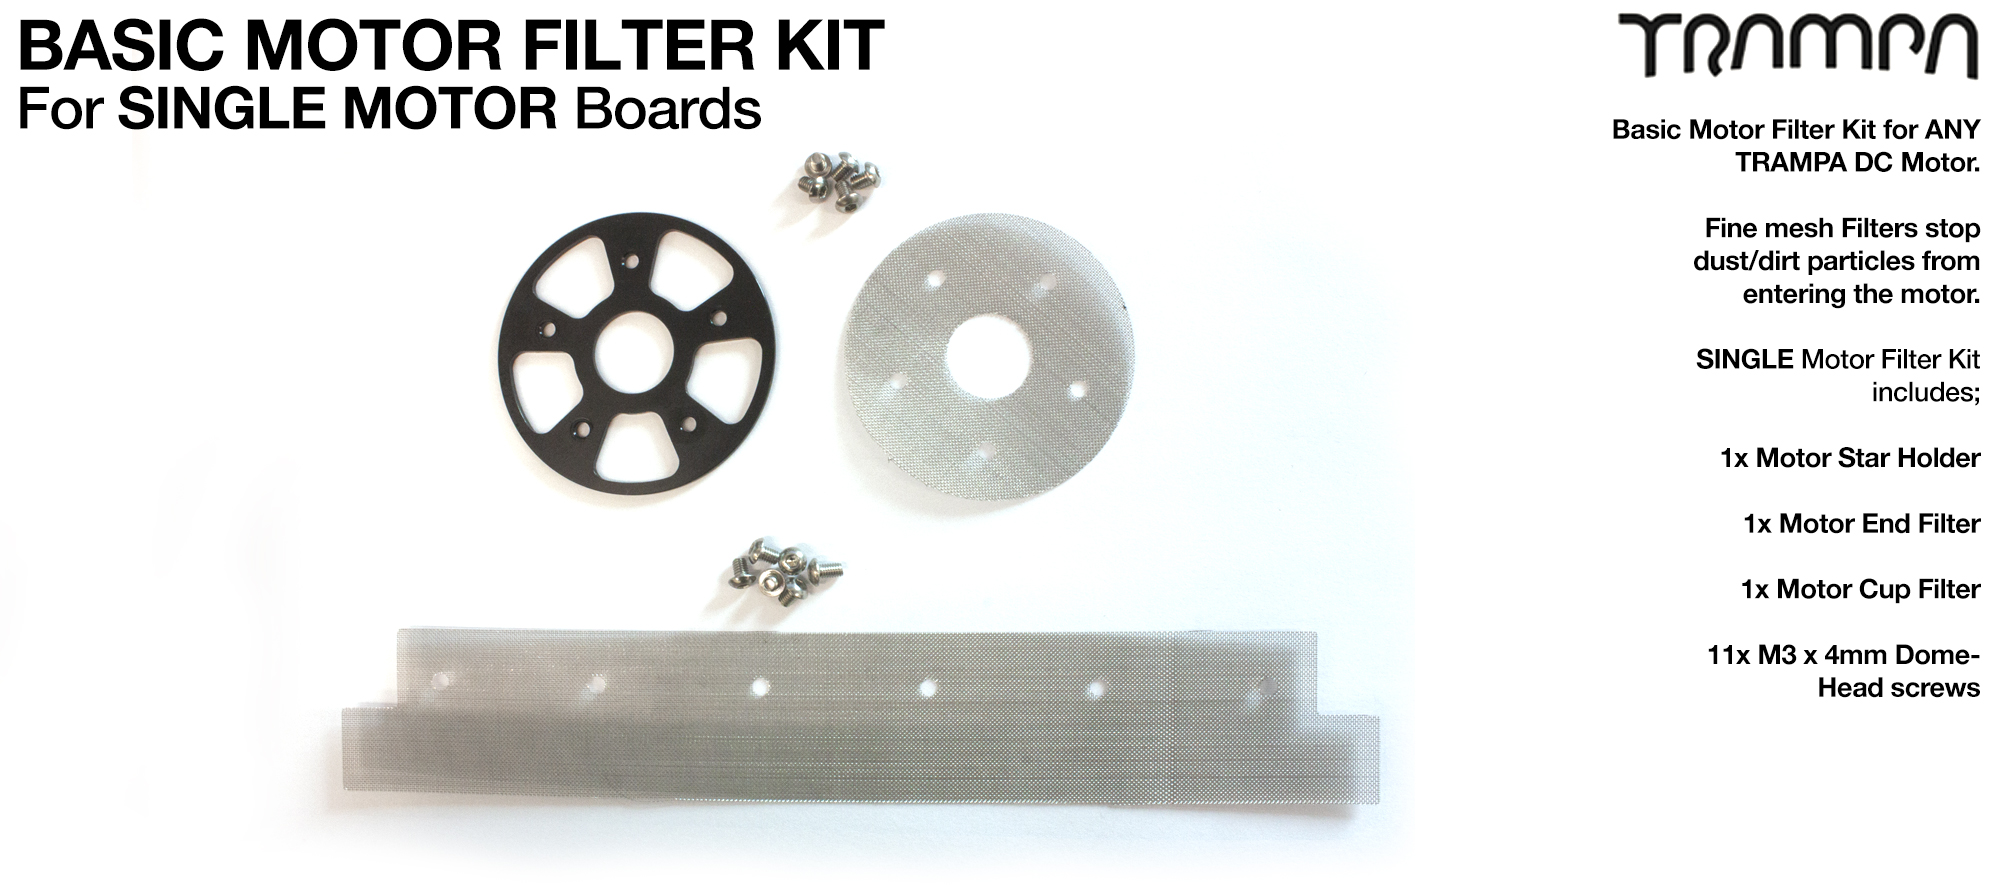 1x Stainless Steel Mesh Filter Kit with Bolts for TRAMPA Motors